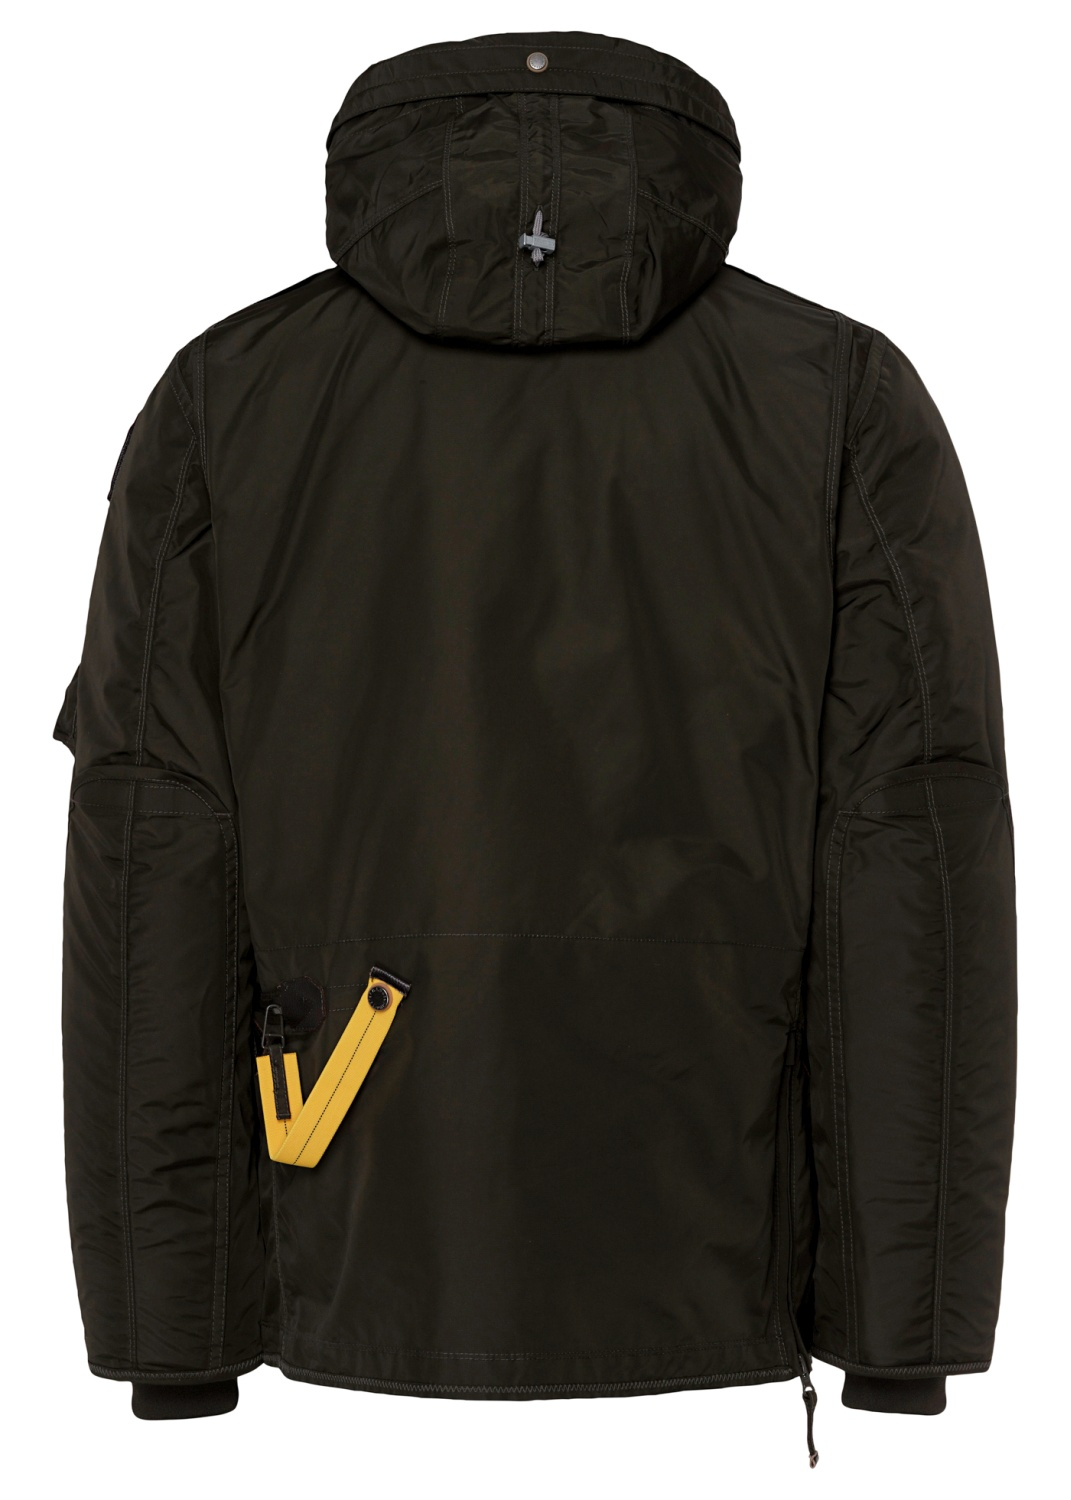 RIGHT HAND BASE - Fieldjacket image number 1